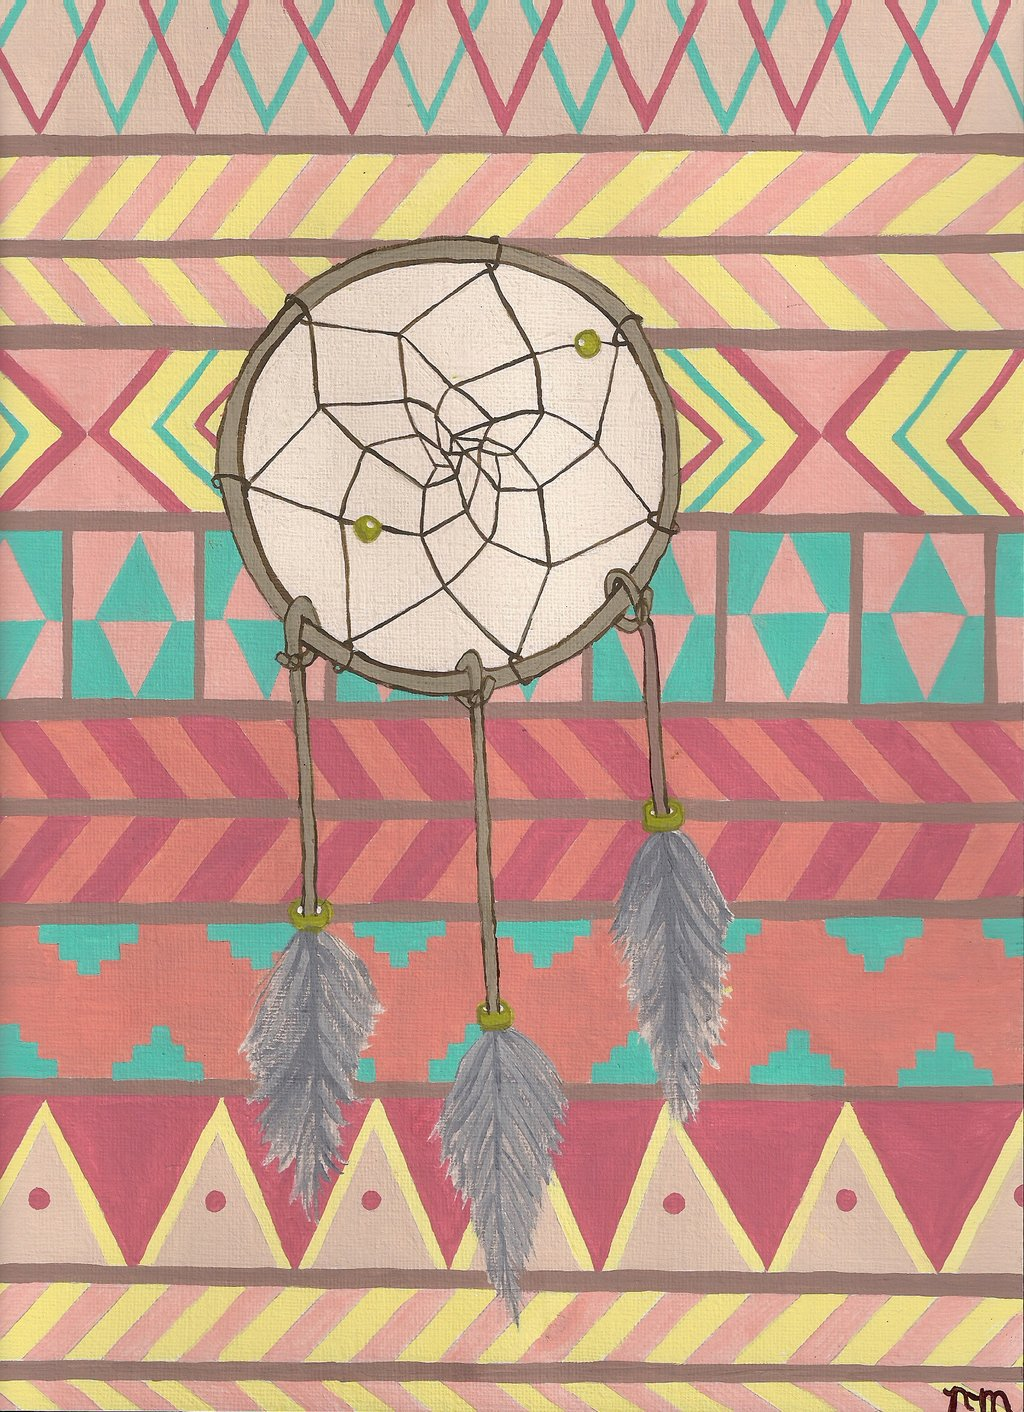 50 Dream Catcher Iphone Wallpapers On Wallpapersafari